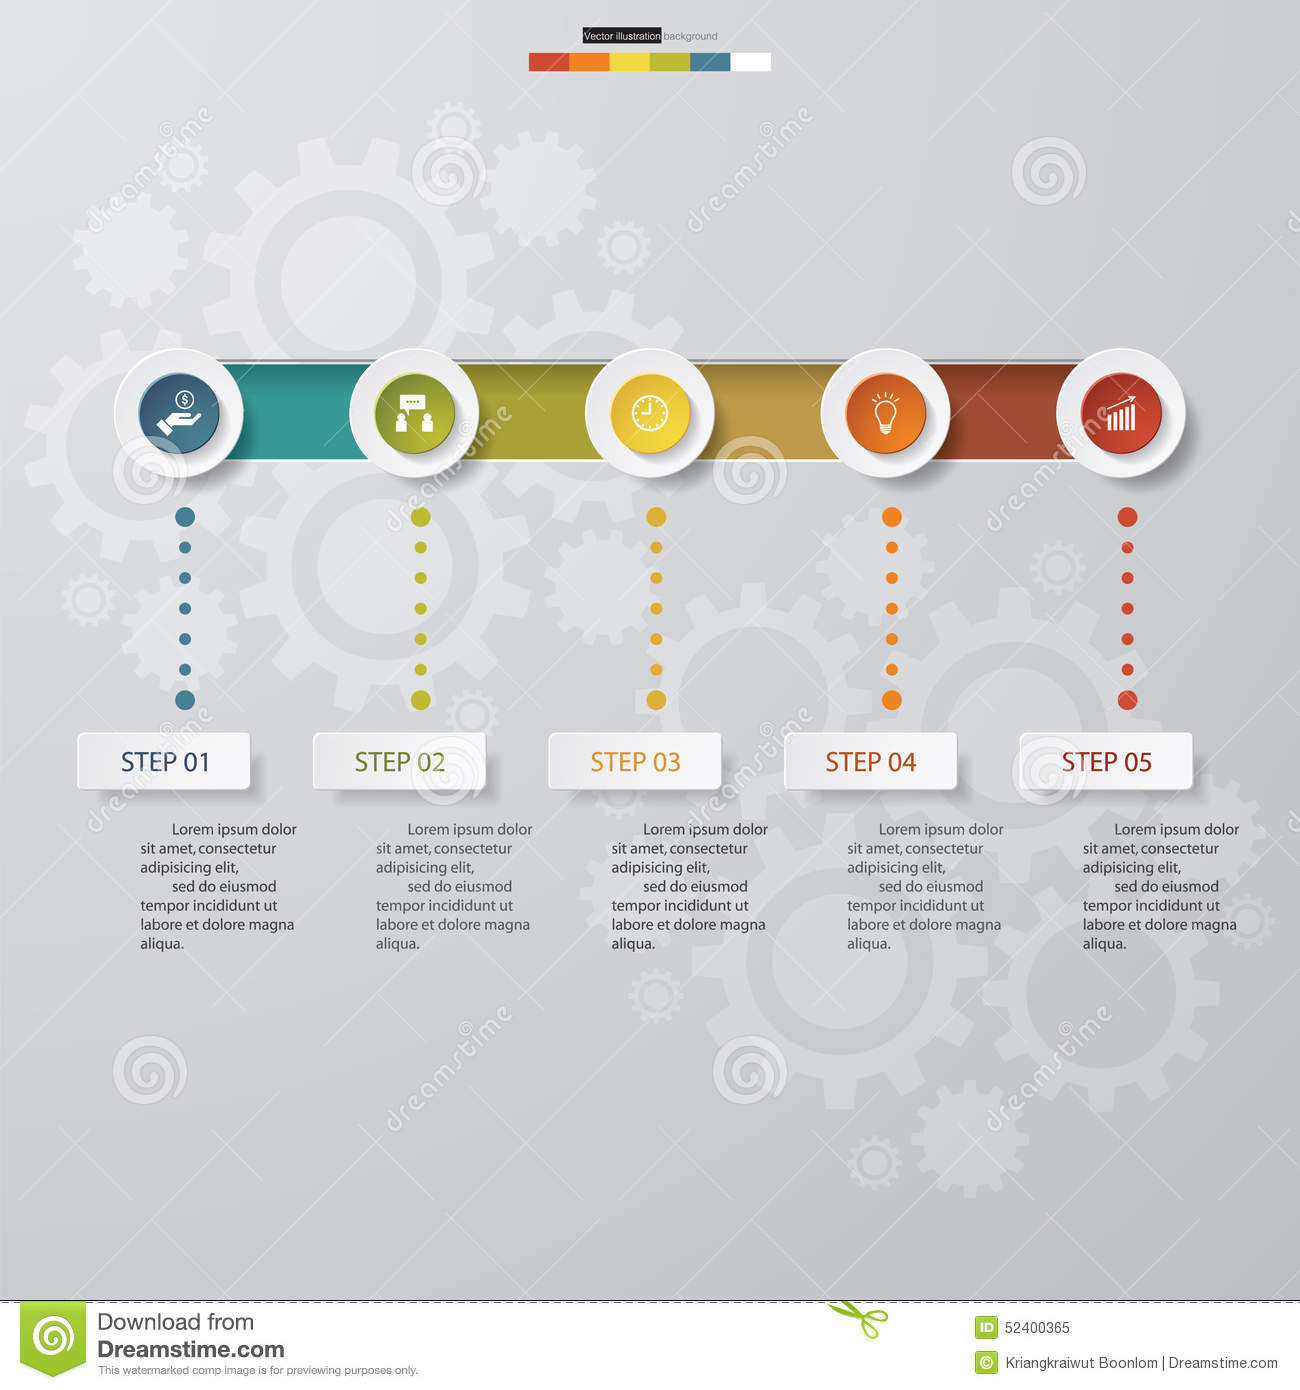 5 steps chart templategraphic or website layout stock vector download 5 steps chart templategraphic or website layout stock vector illustration of ccuart Choice Image